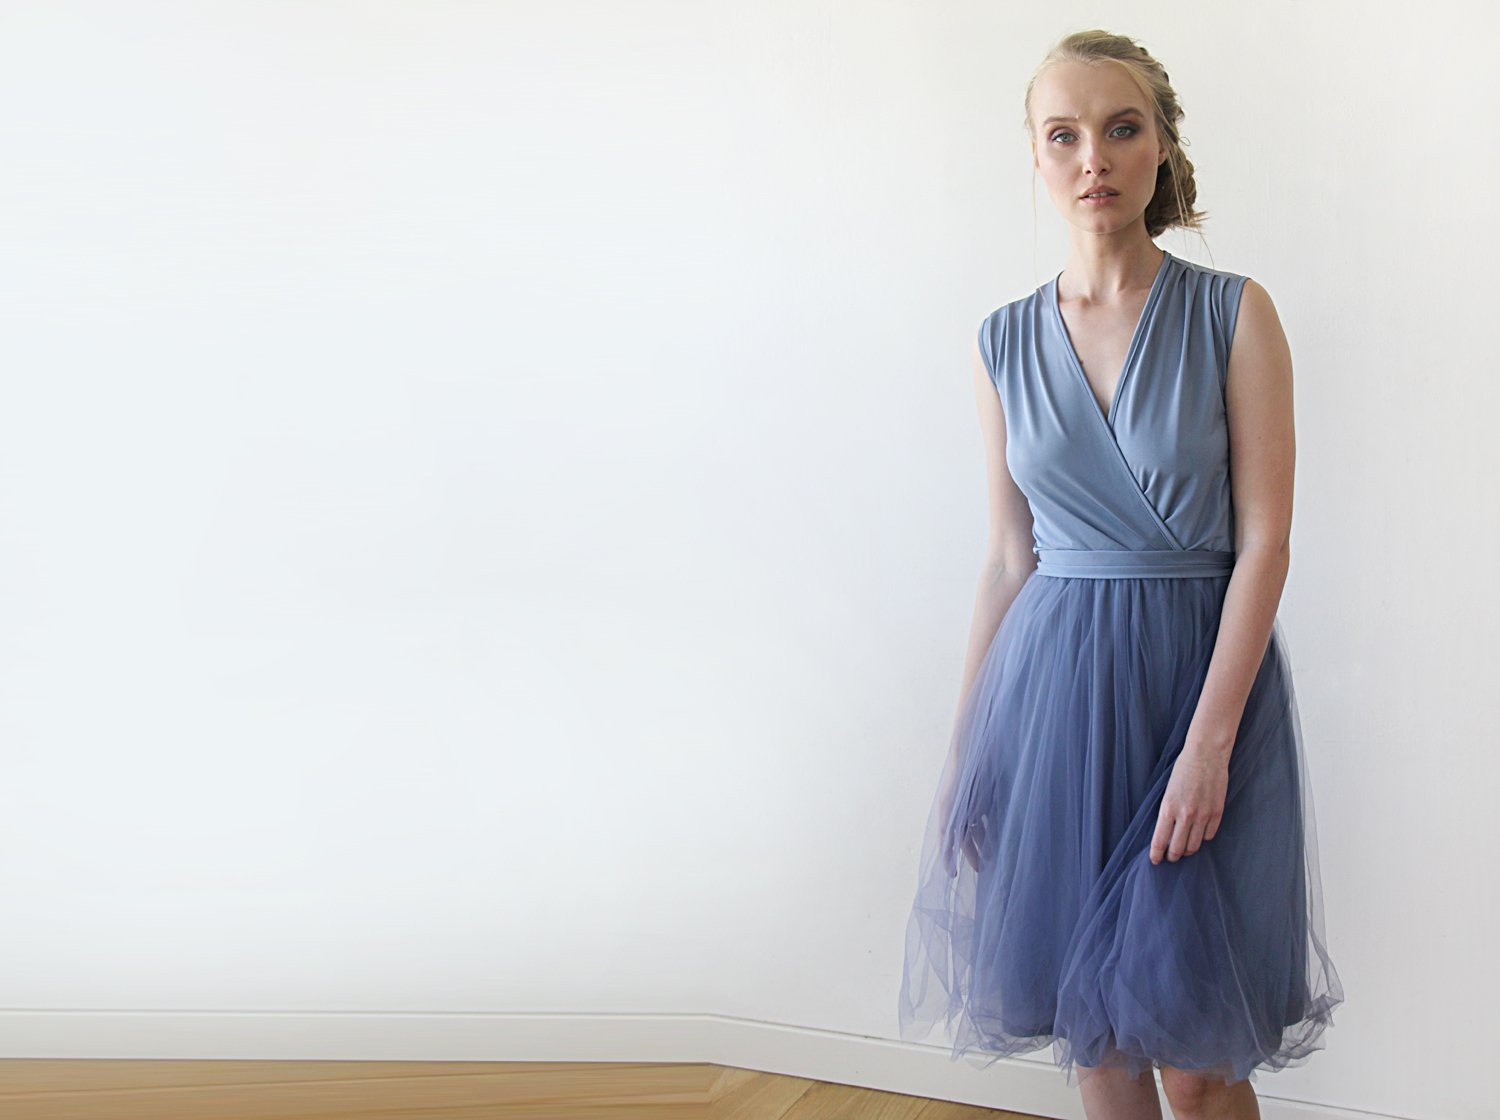 Dusty Blue Decorated tulle sleeveless Dress With Decorated Belt SALE 1082